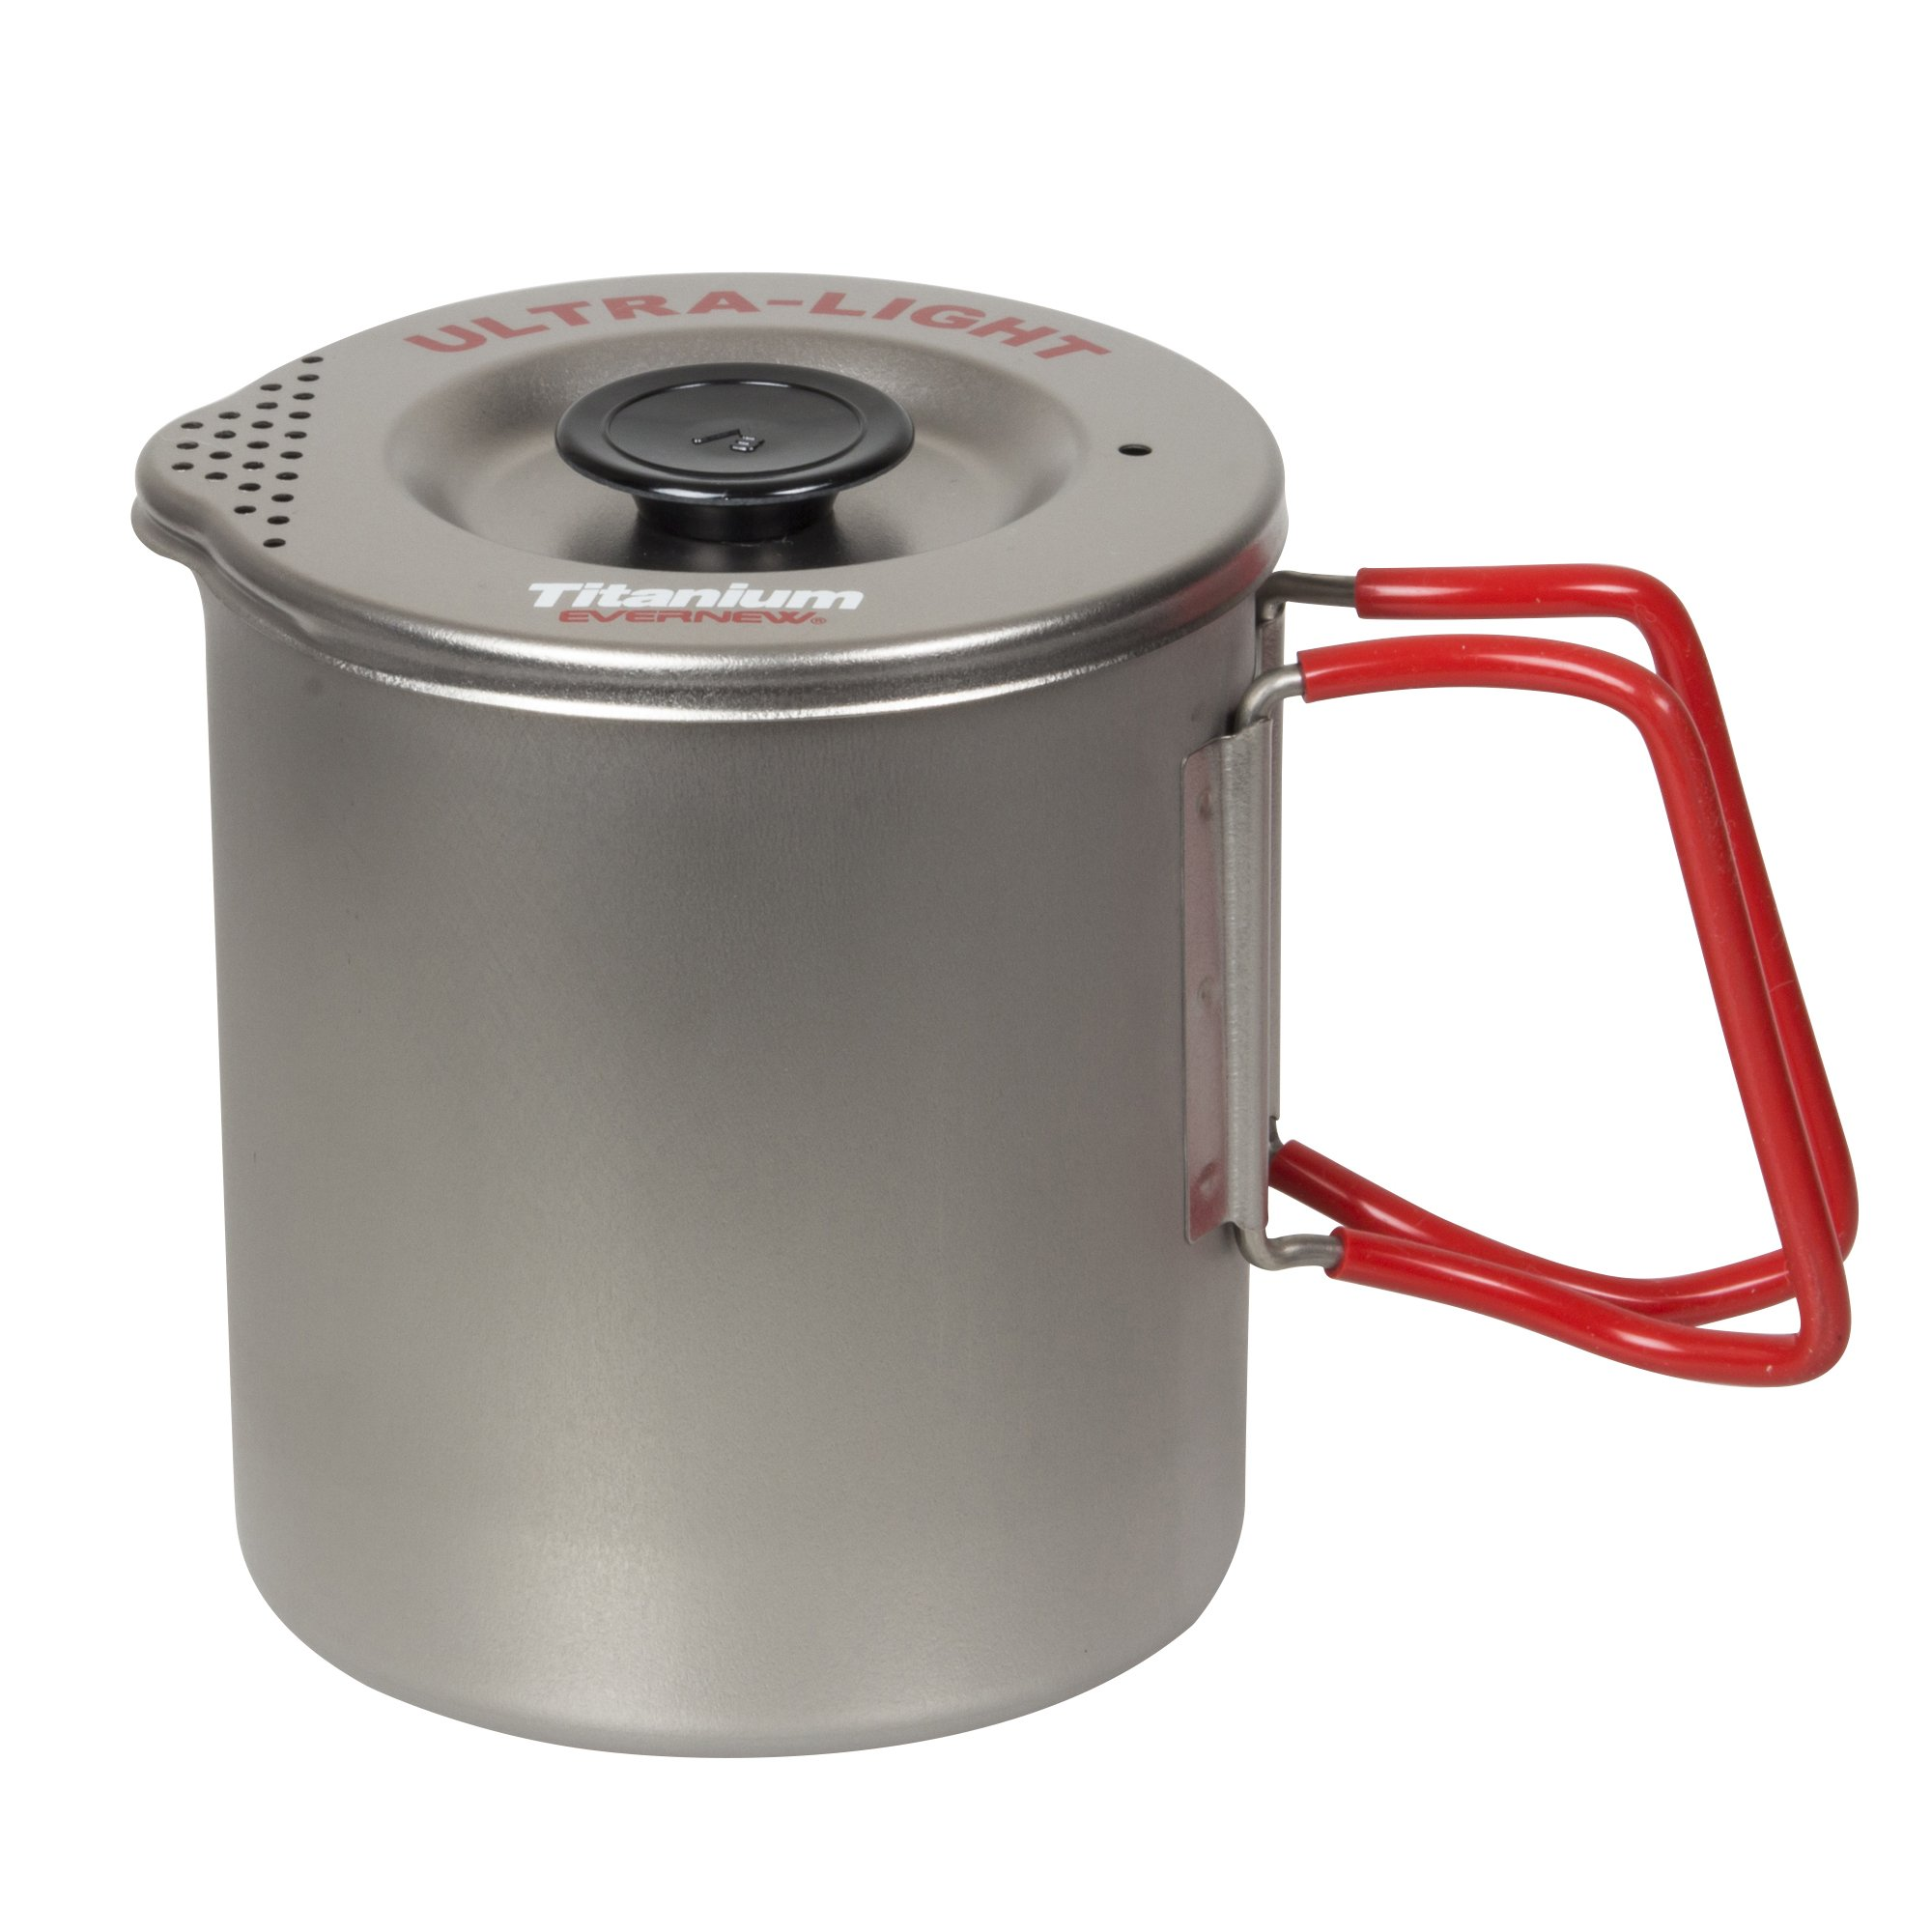 Evernew Titanium Pasta Pot-red-small by EVERNEW